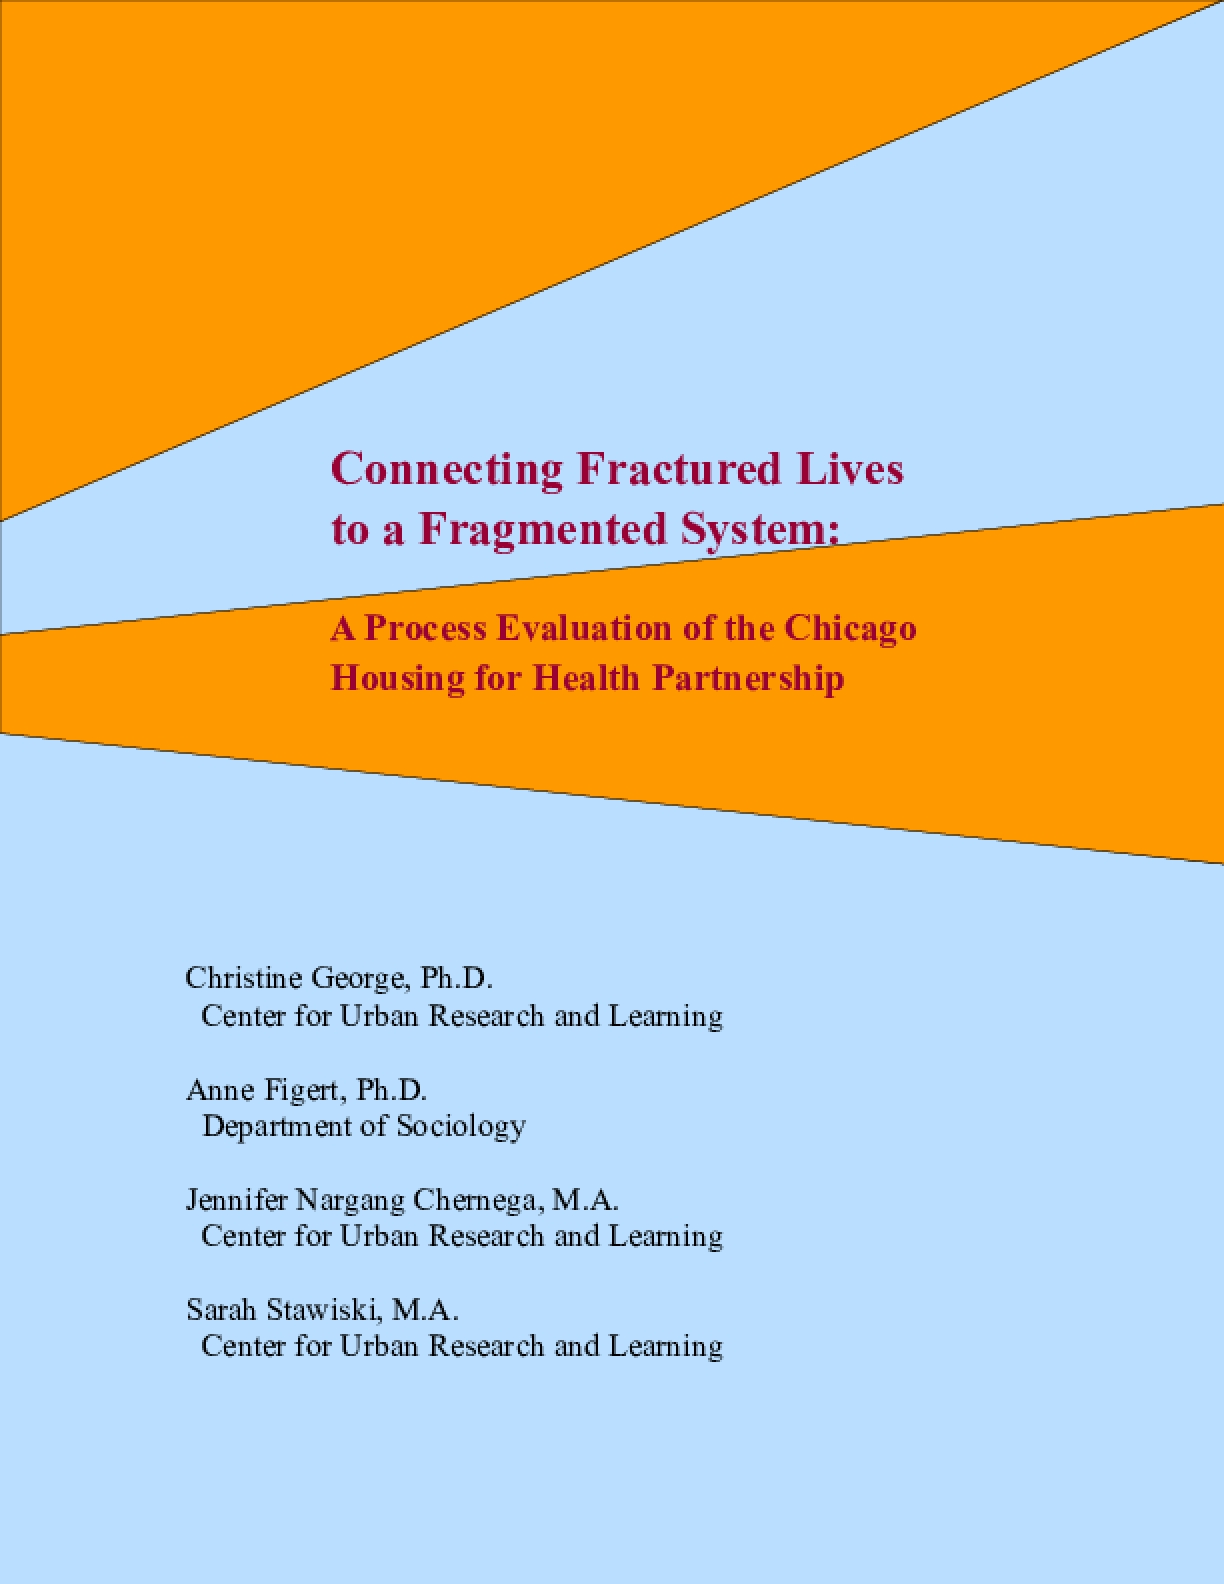 Connecting Fractured Lives to a Fragmented System: Process Evaluation Report Chicago Housing for Health Partnership - Policy Report